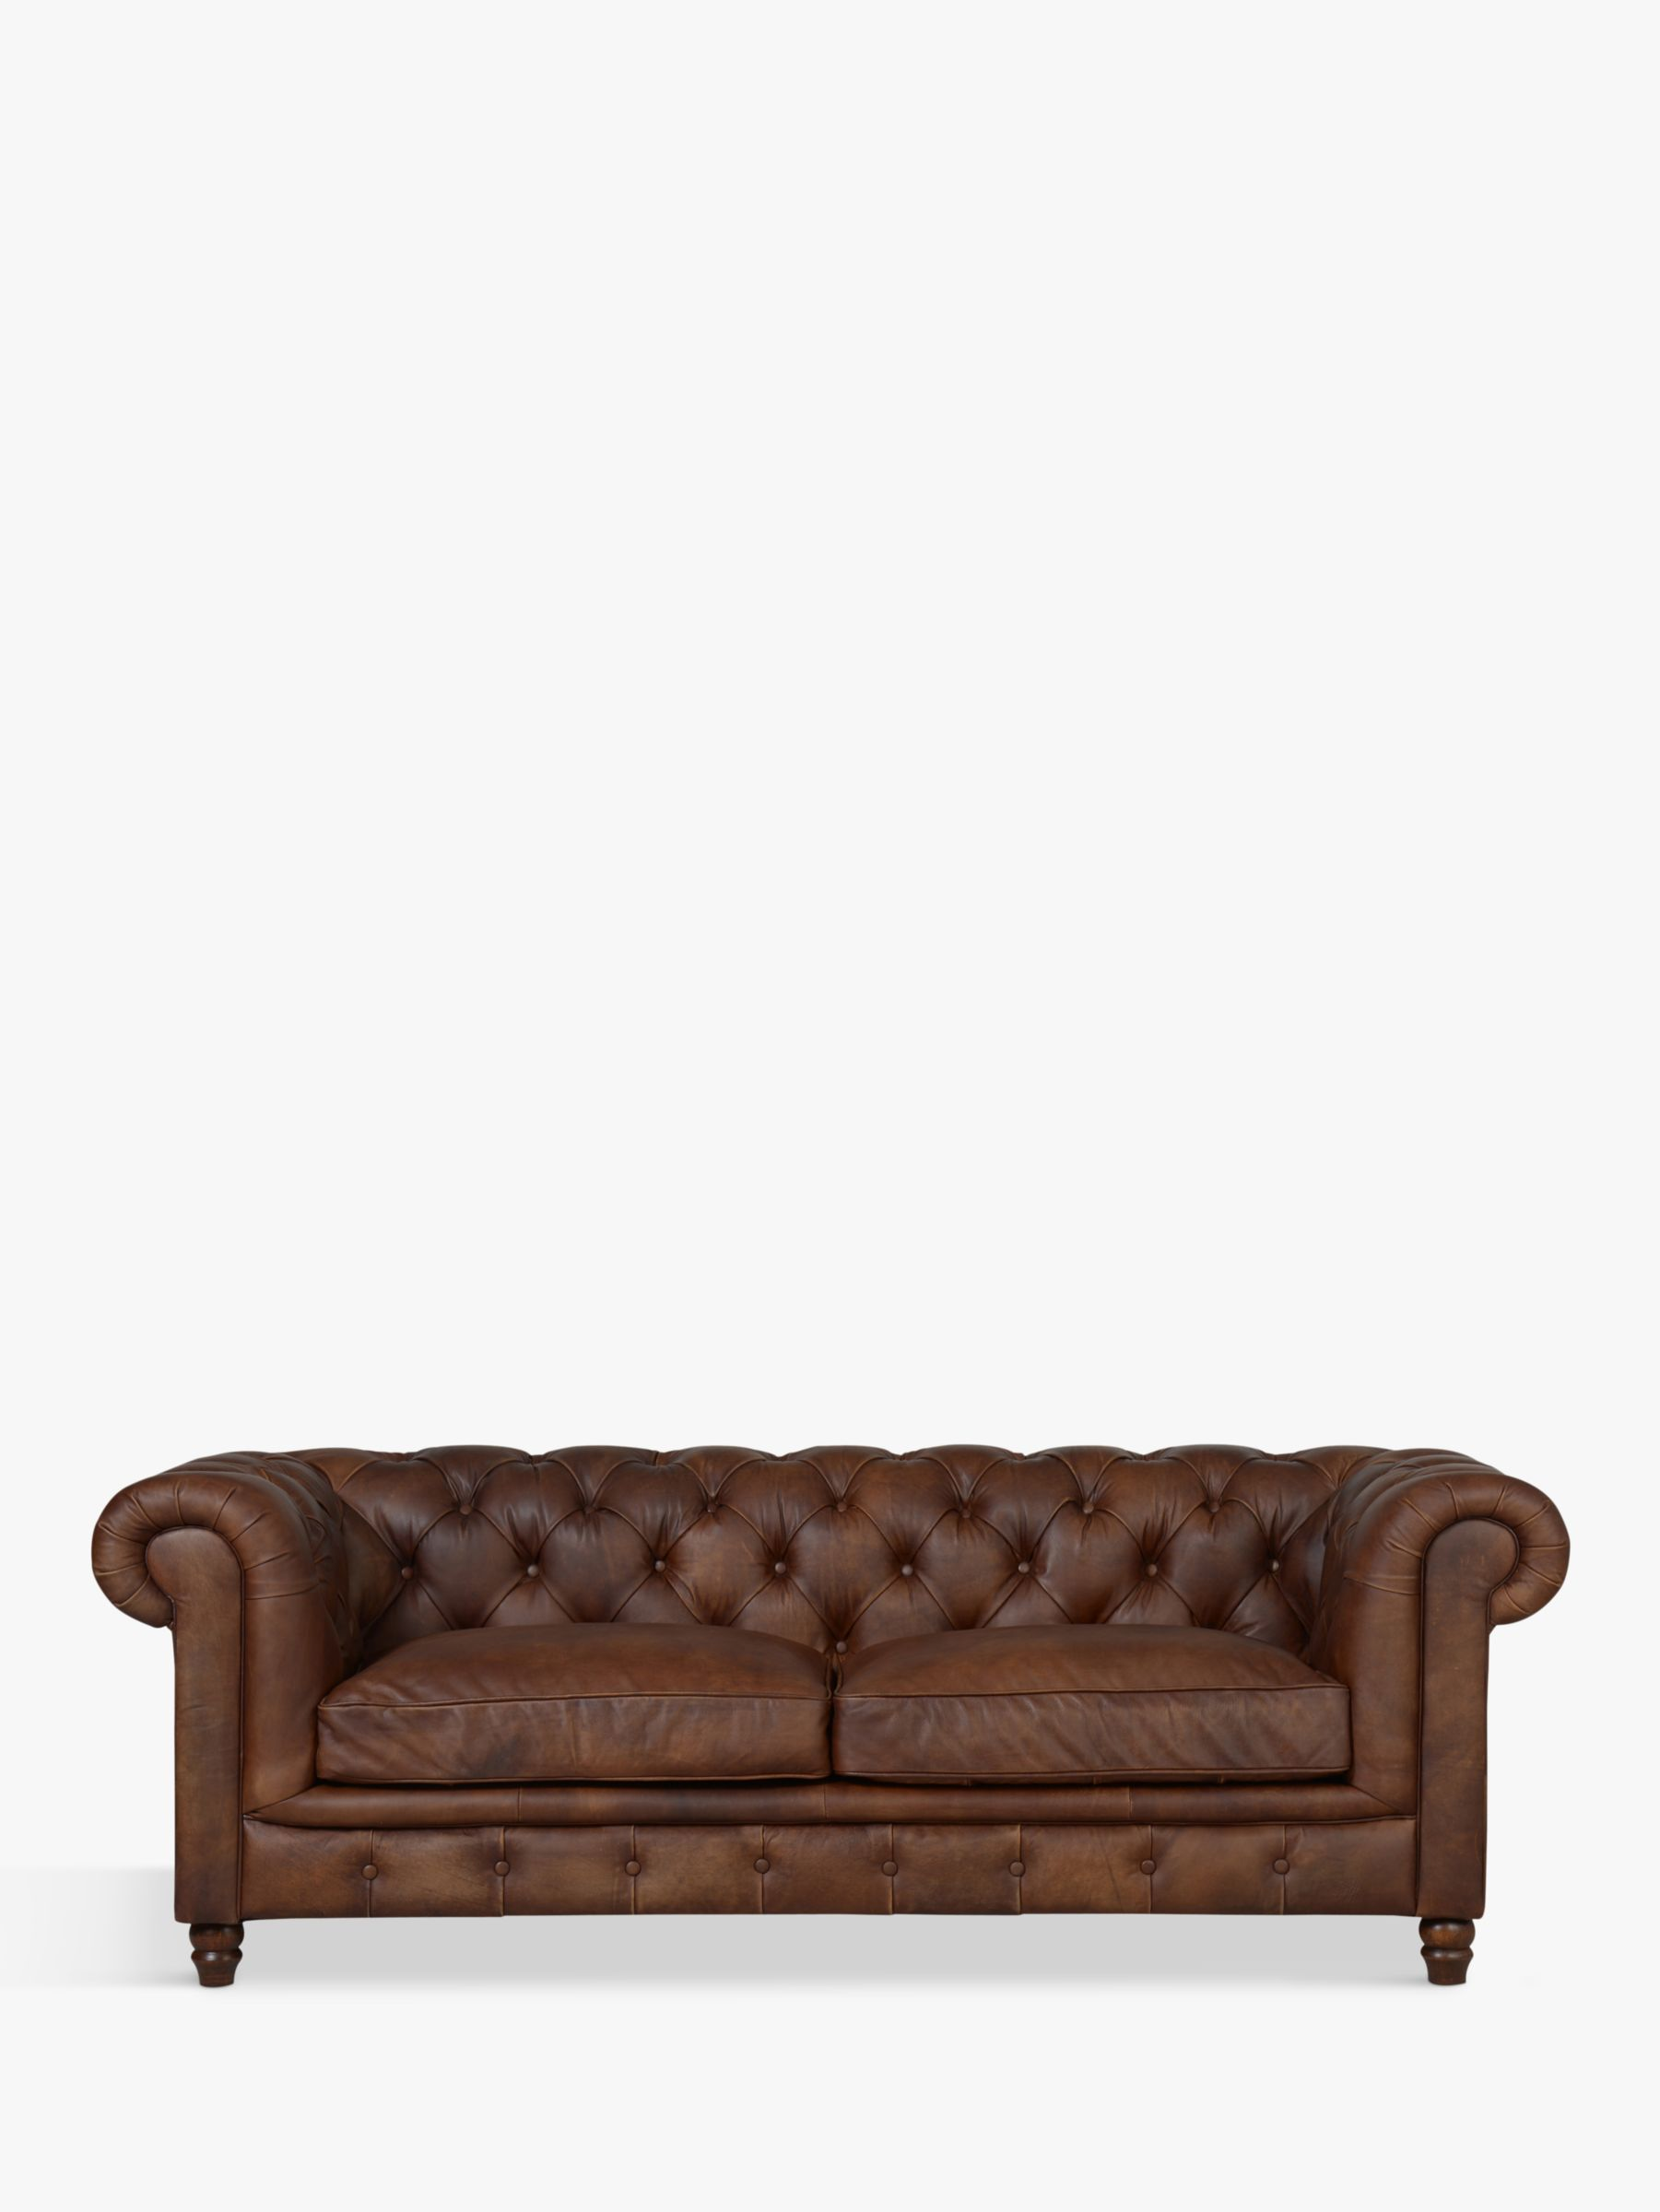 Halo Halo Earle Chesterfield Large 3 Seater Leather Sofa, Antique Whisky